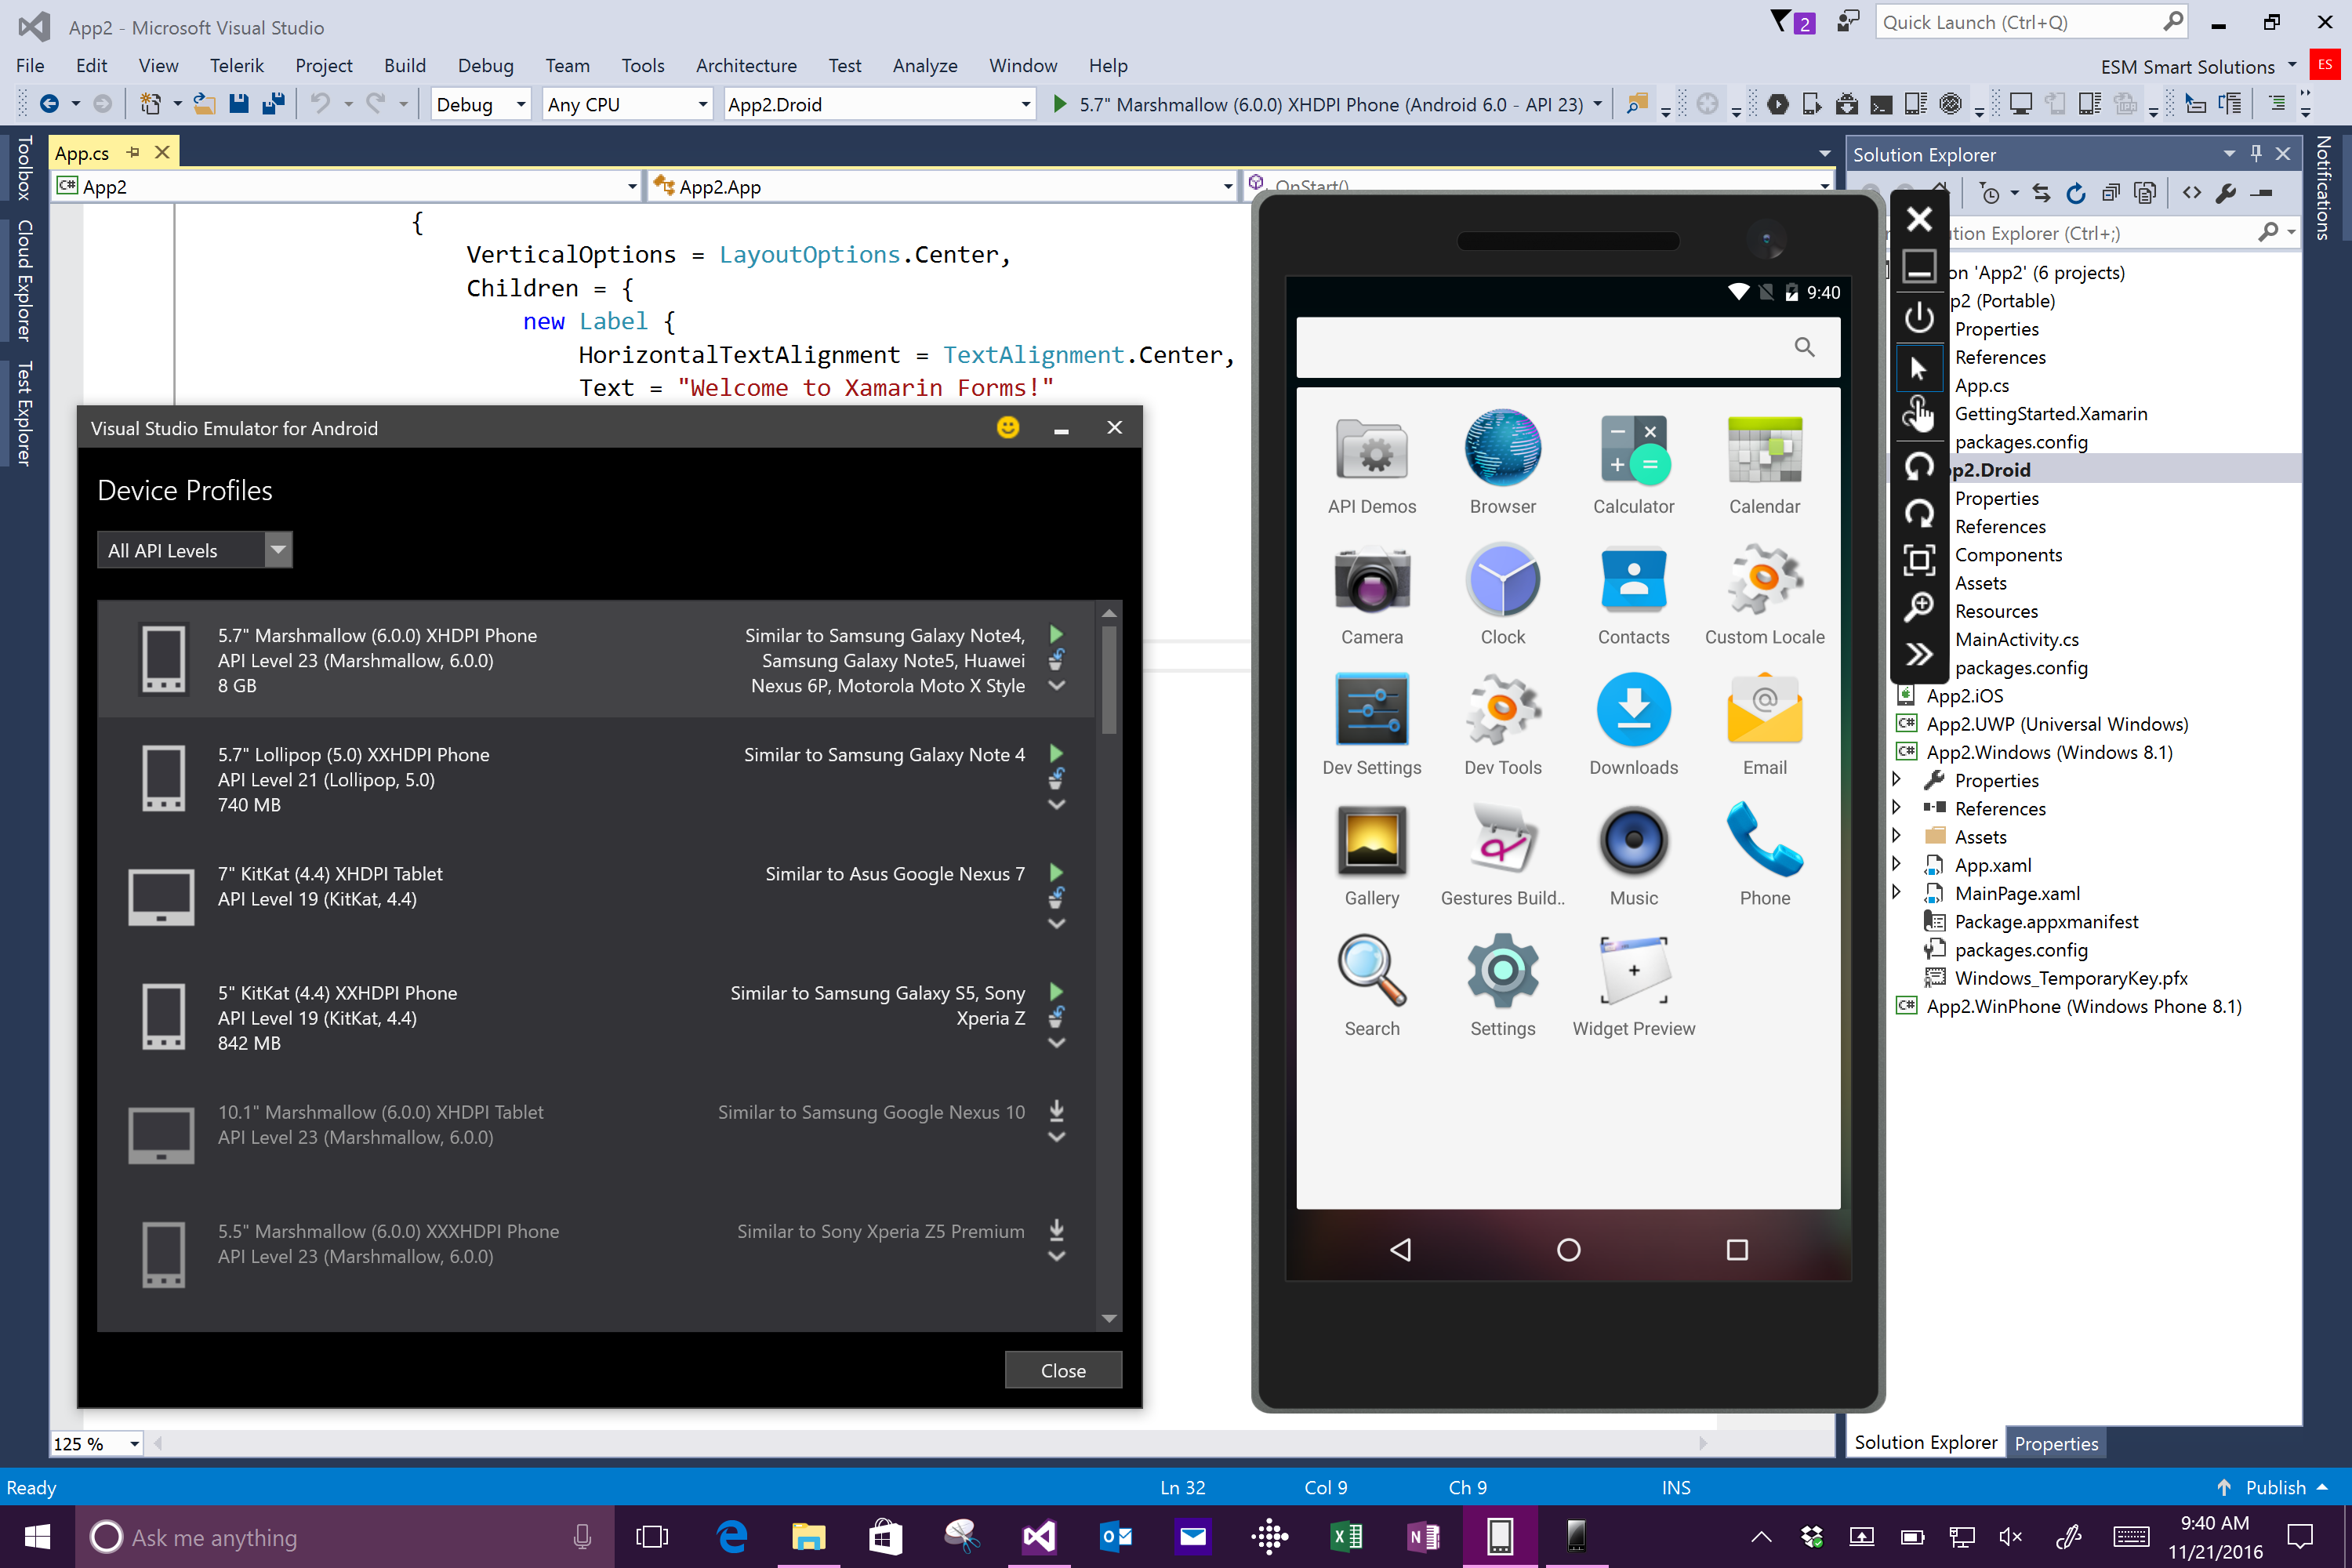 Android emulator opens, but project does not deploy and